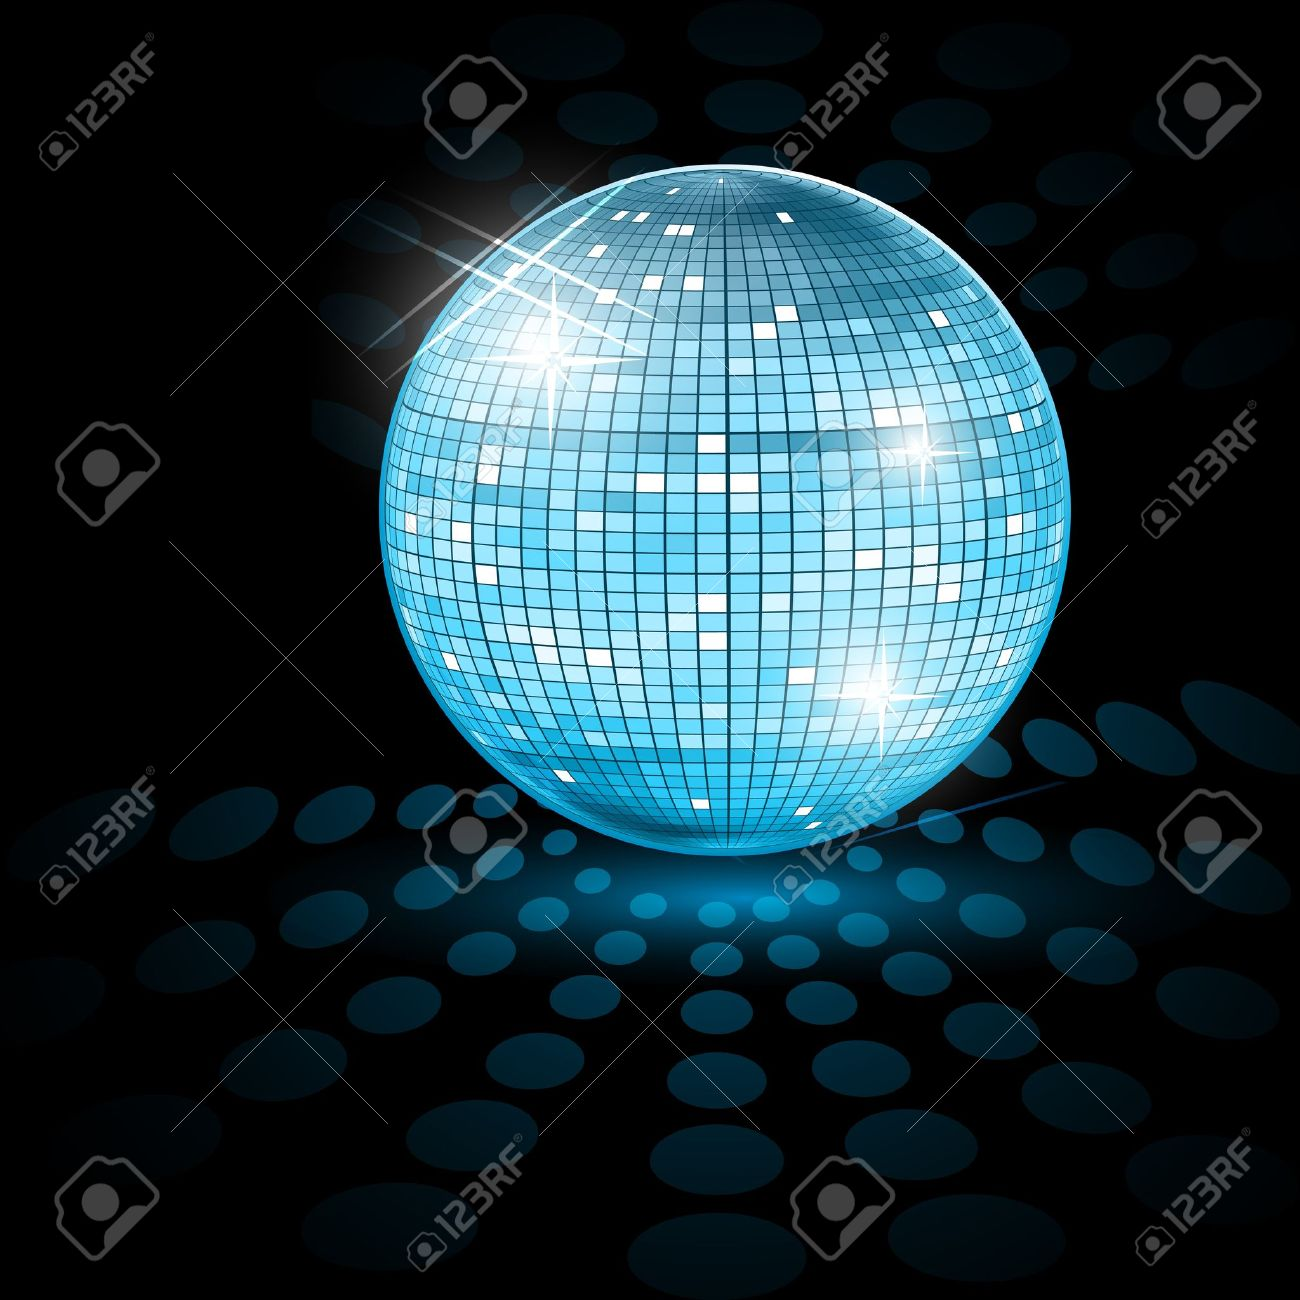 illustration of disco ball on abstract background - 9269550